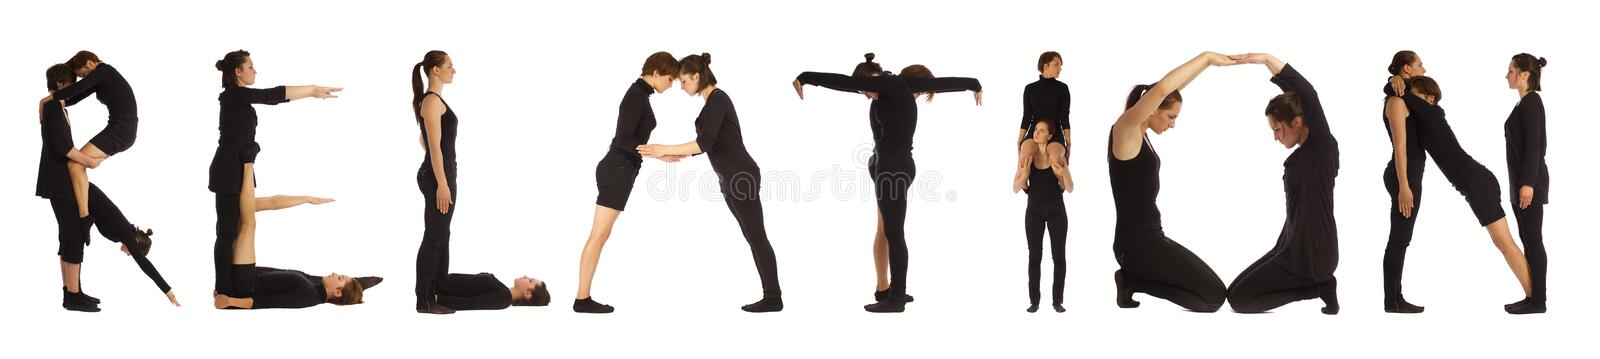 Black dressed people forming RELATION word. Over white background stock photos